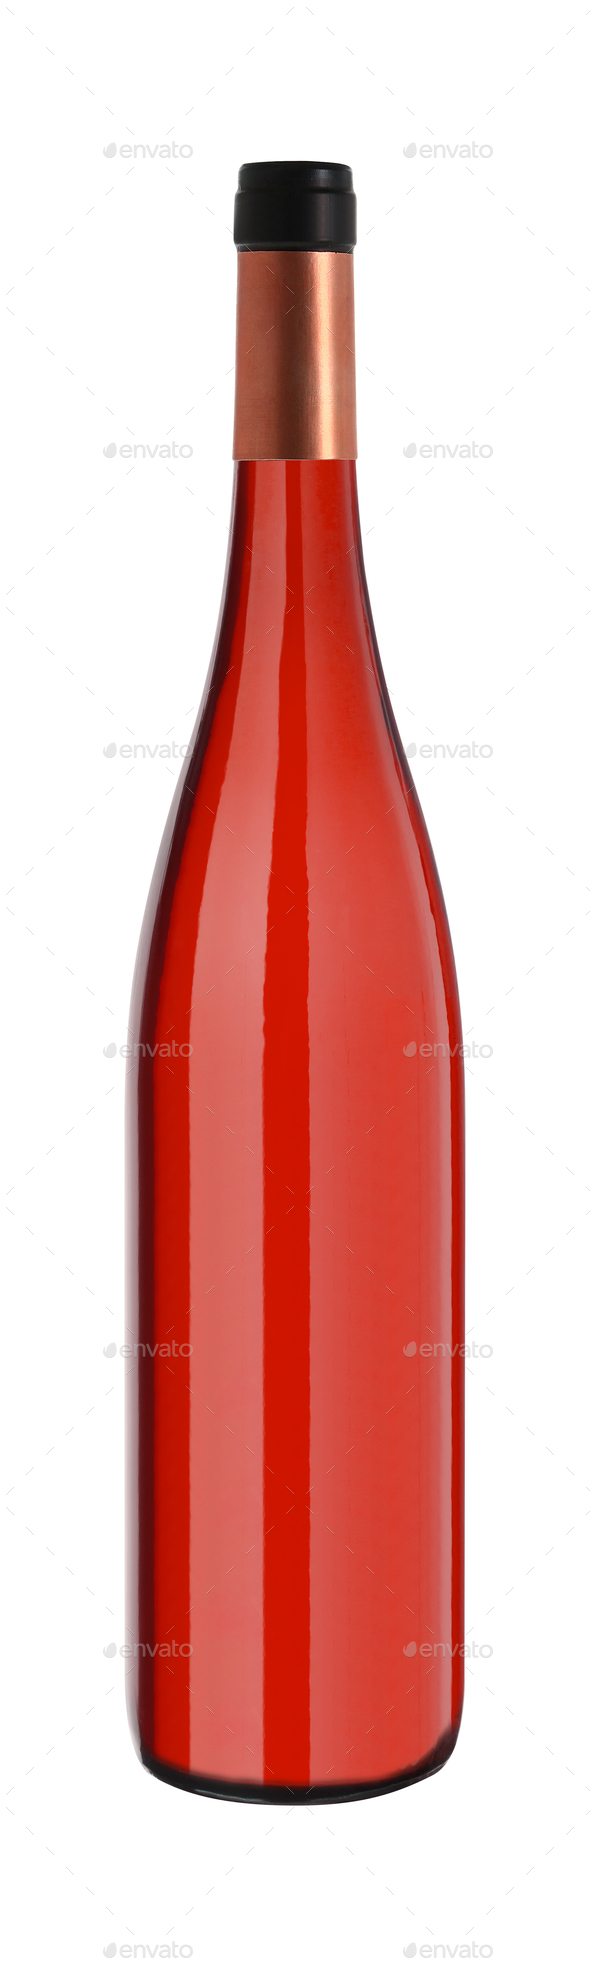 Wine bottle isolated - Stock Photo - Images